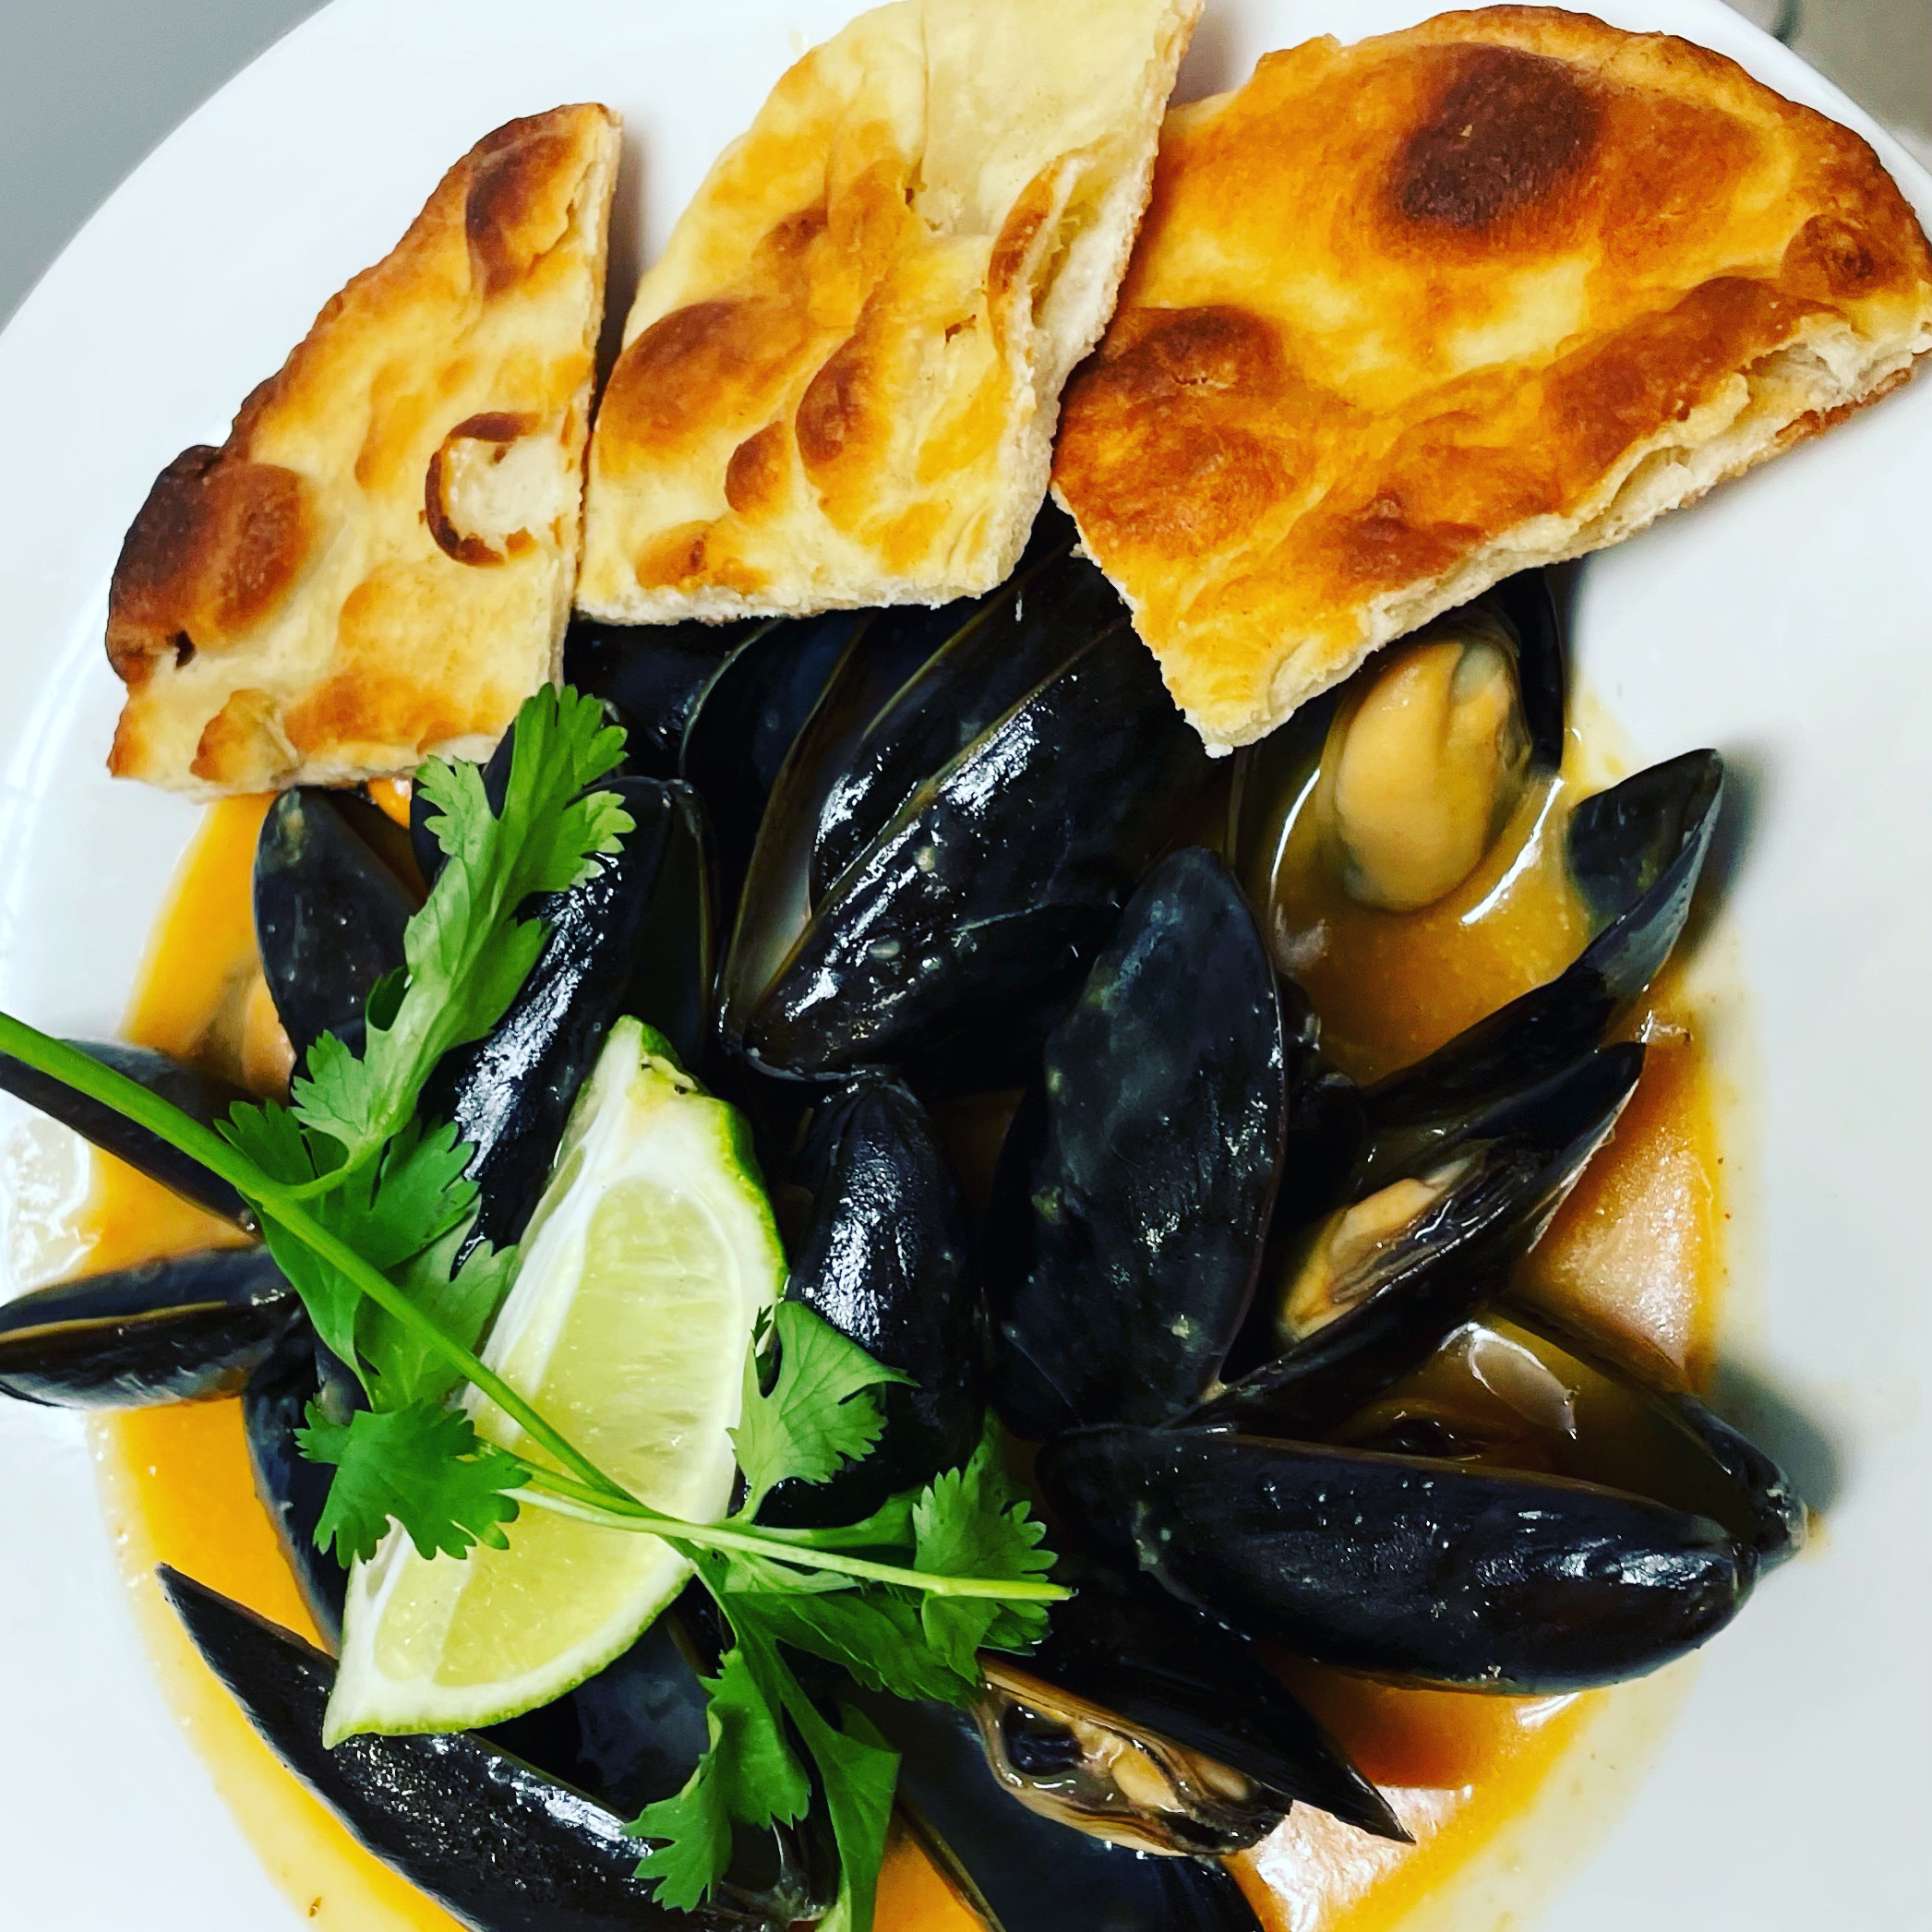 Mussels on a plate with sauce over top